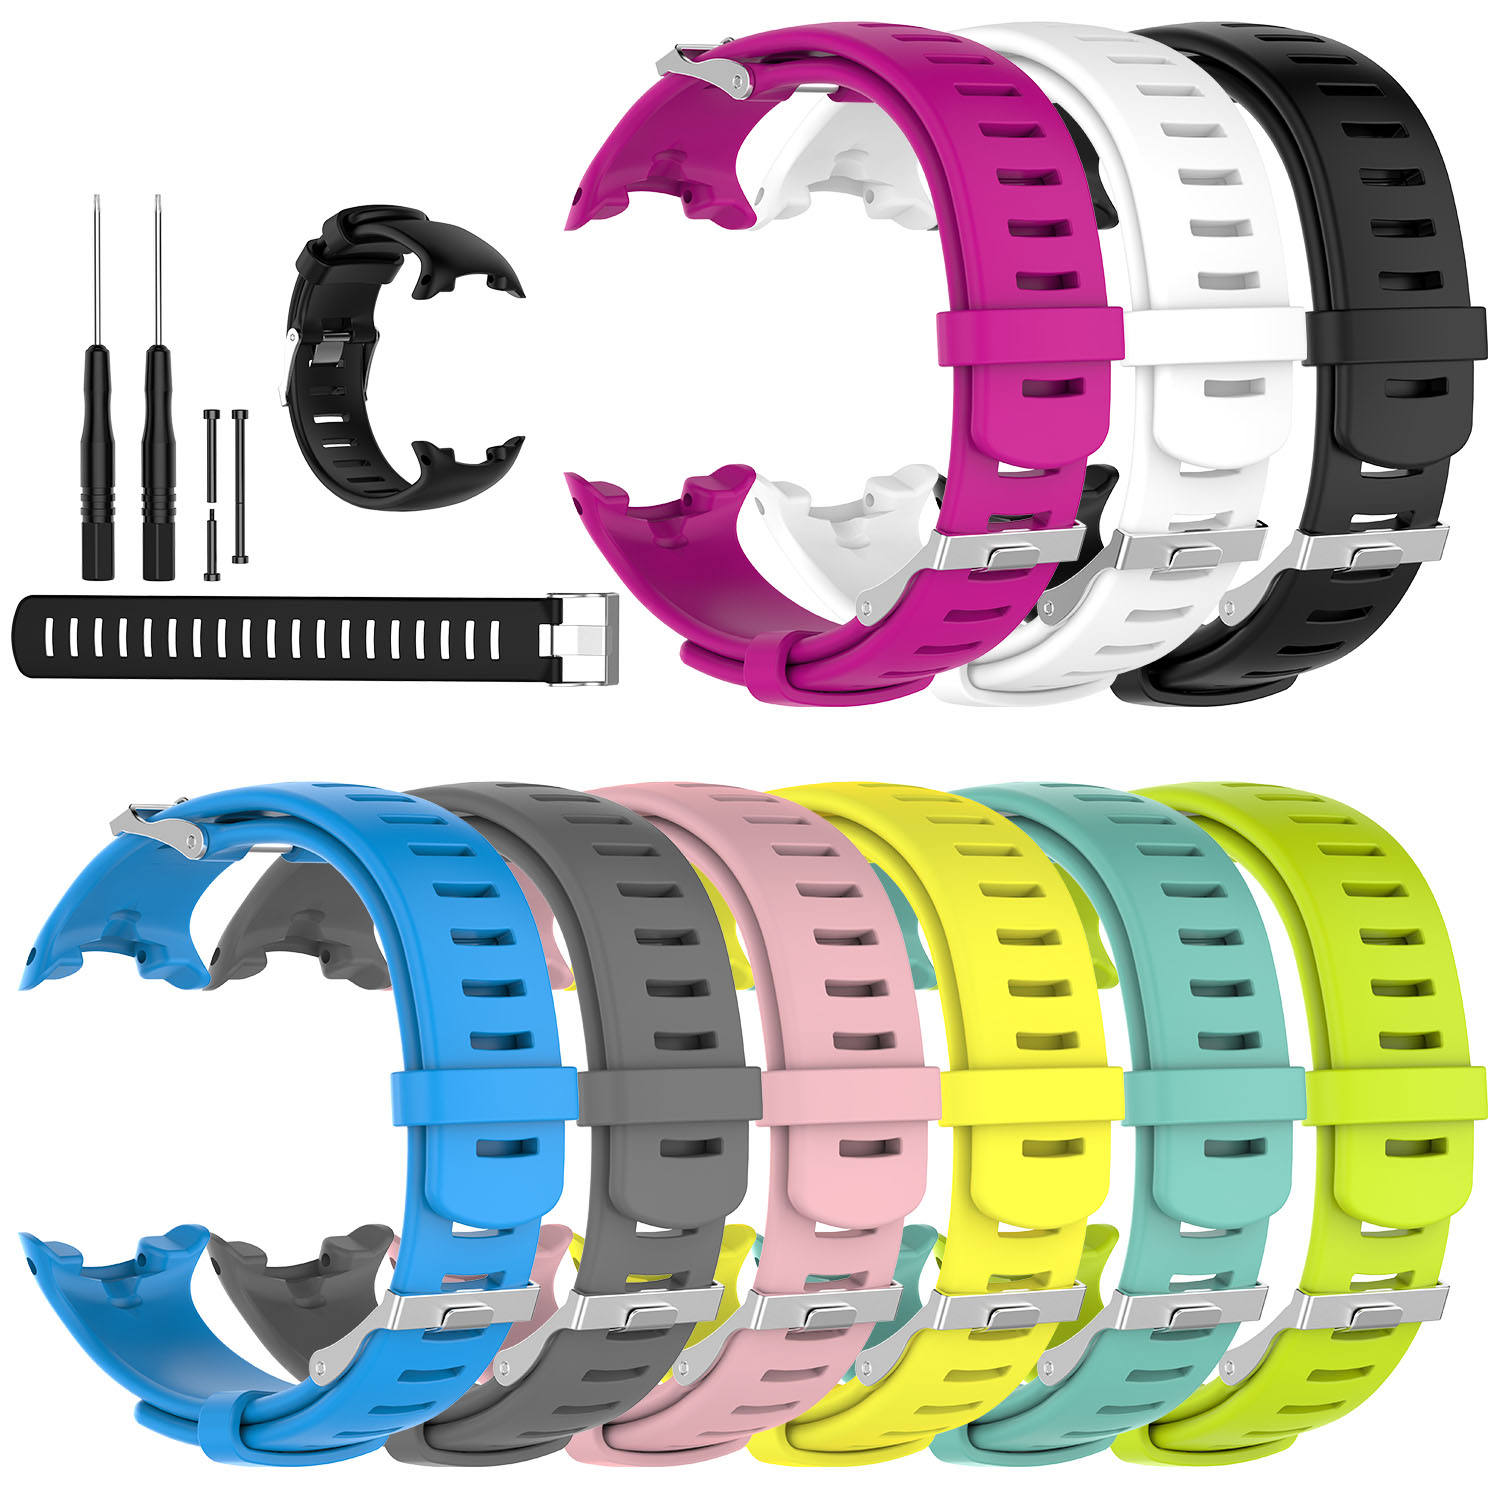 Silicone Watch Strap For Suunto D4i Novo Outdoor Sports Diving Watch Band With Tools